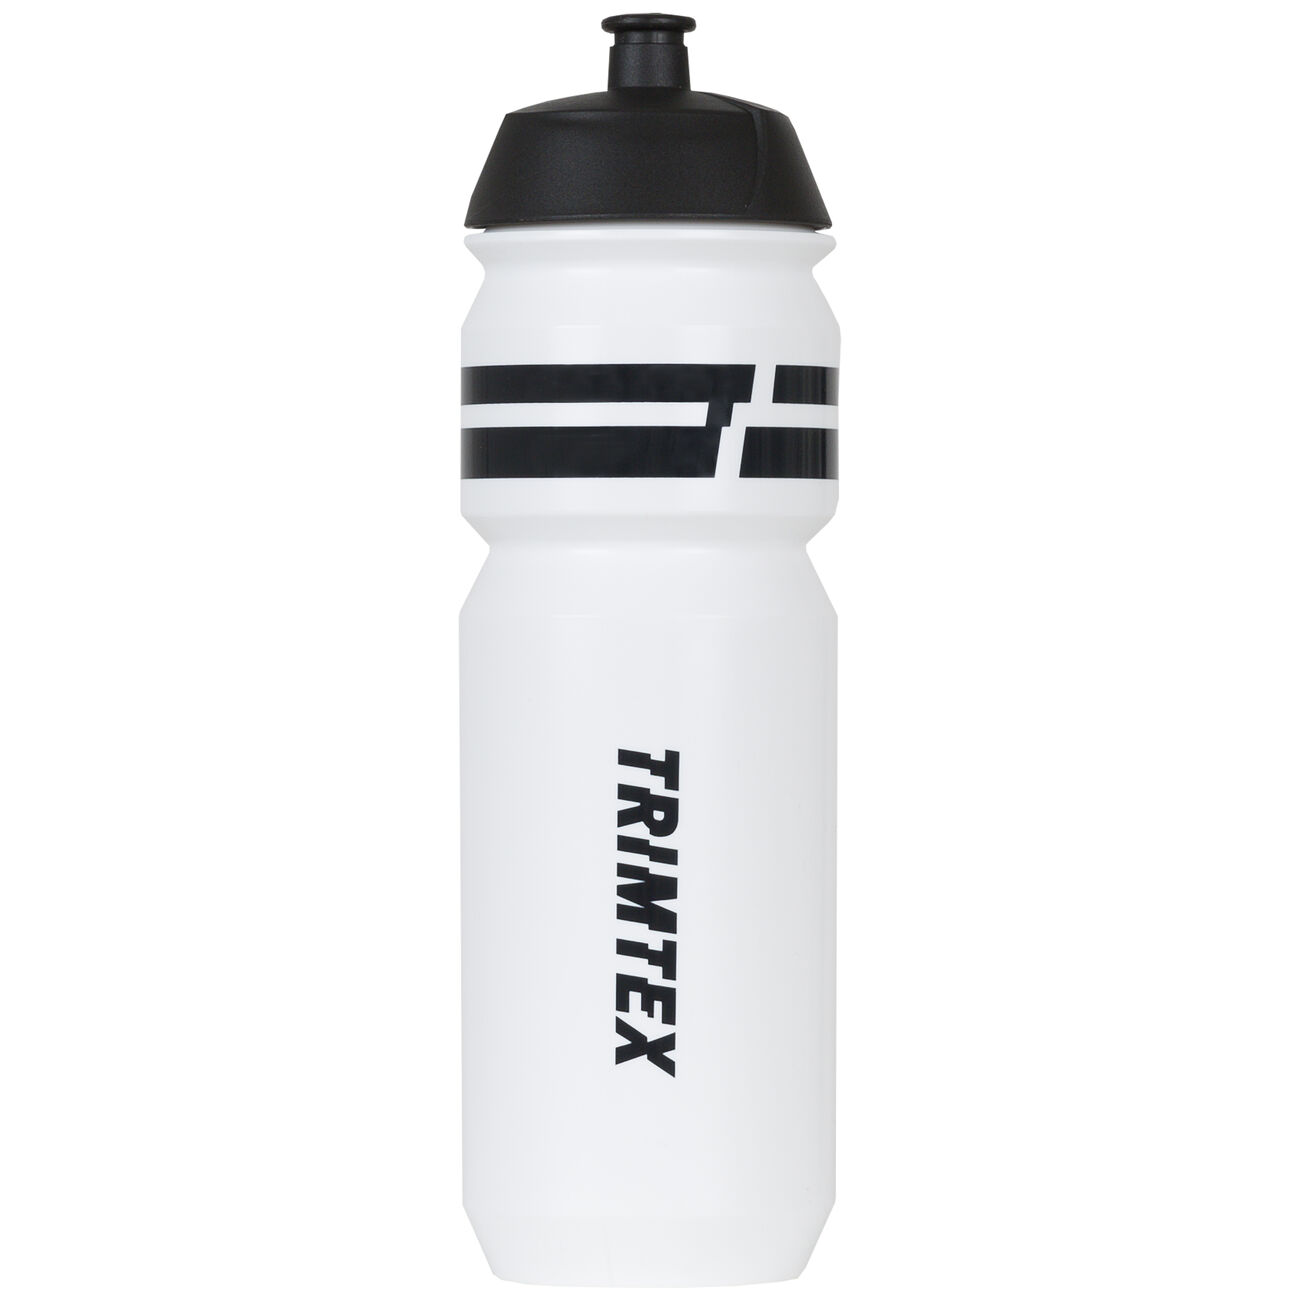 Trimtex Water Bottle 750 ml